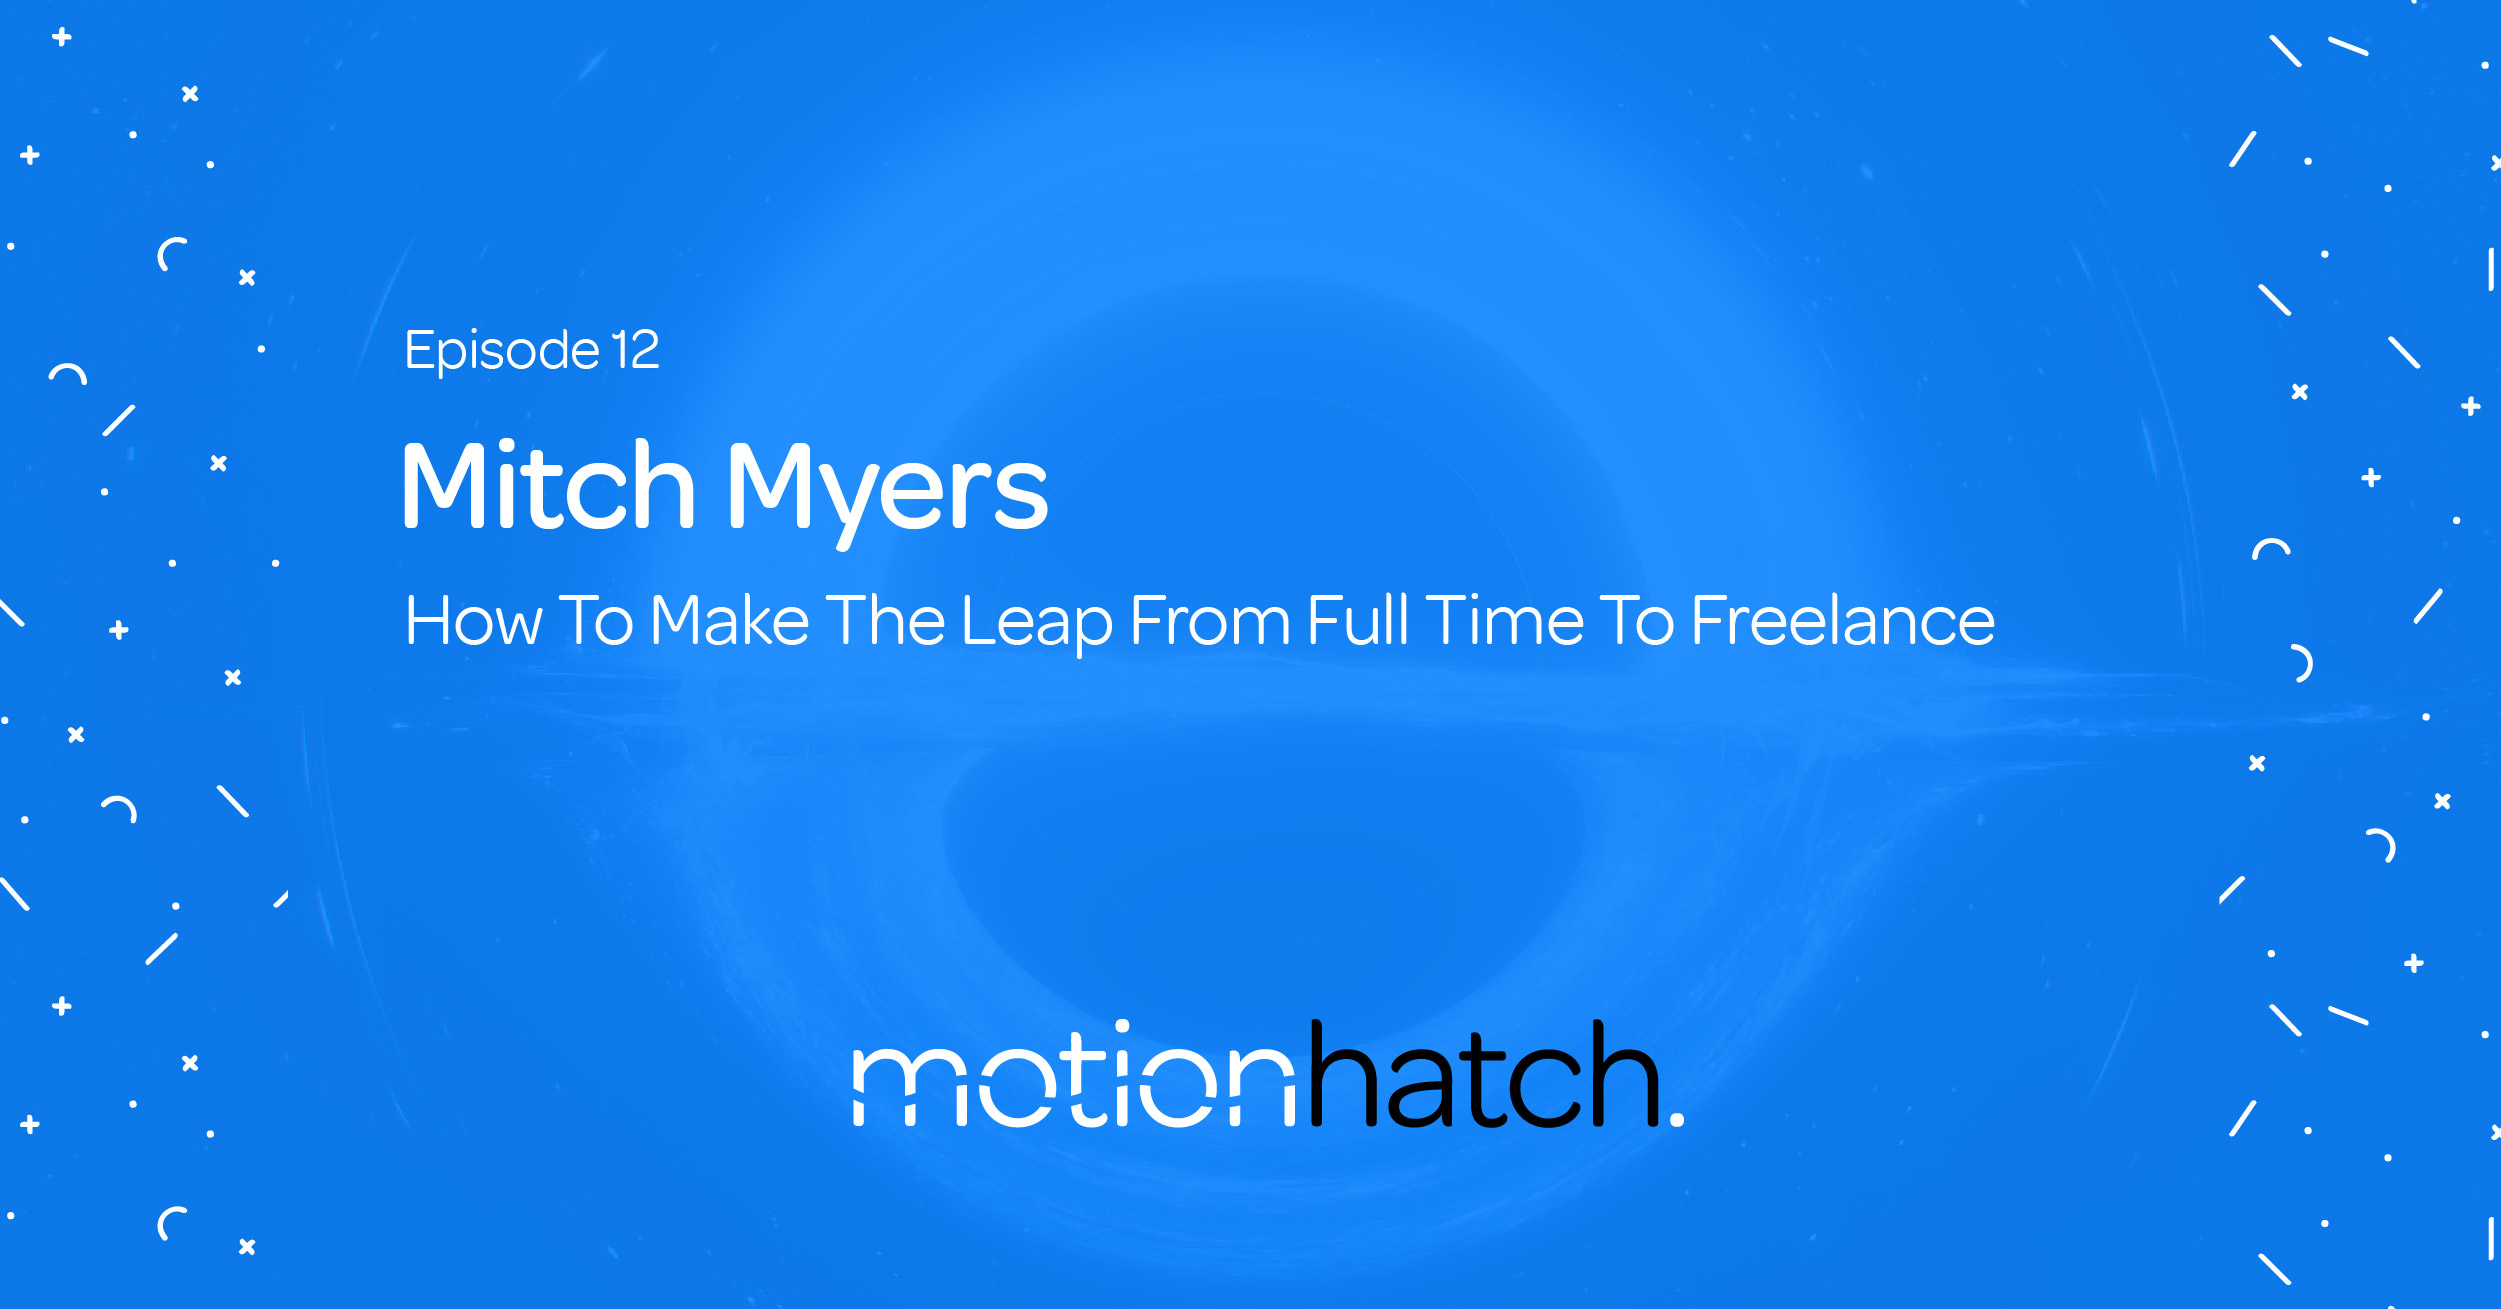 012: How To Make The Leap From Full Time To Freelance w/ Mitch Myers